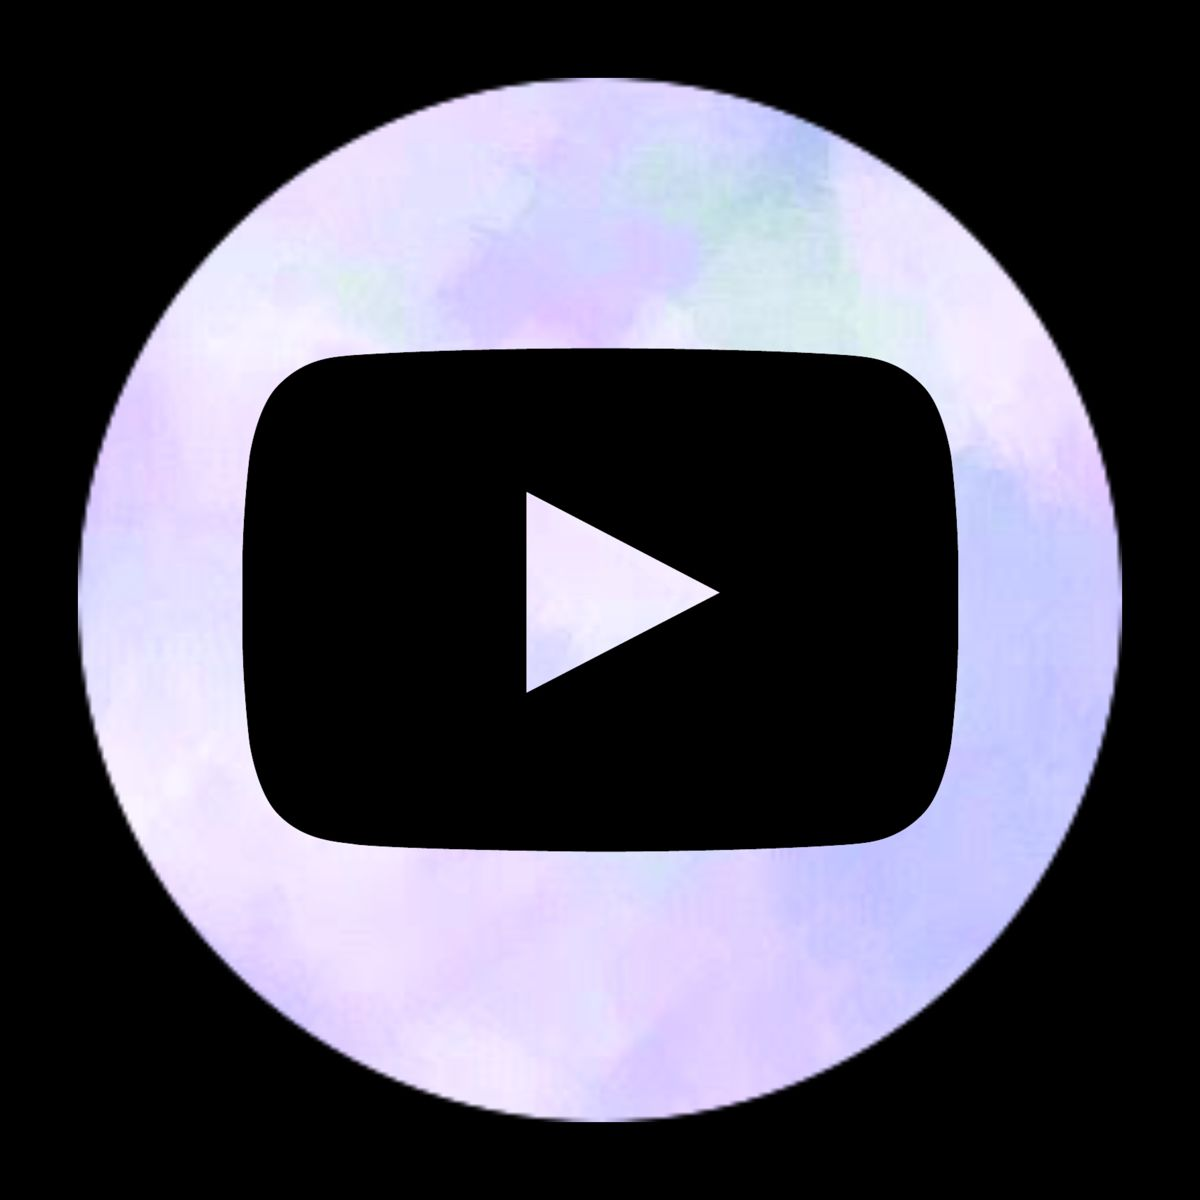 Youtube Icon In 2020 Purple Wallpaper Iphone App Icon Iphone Wallpaper Tumblr Aesthetic